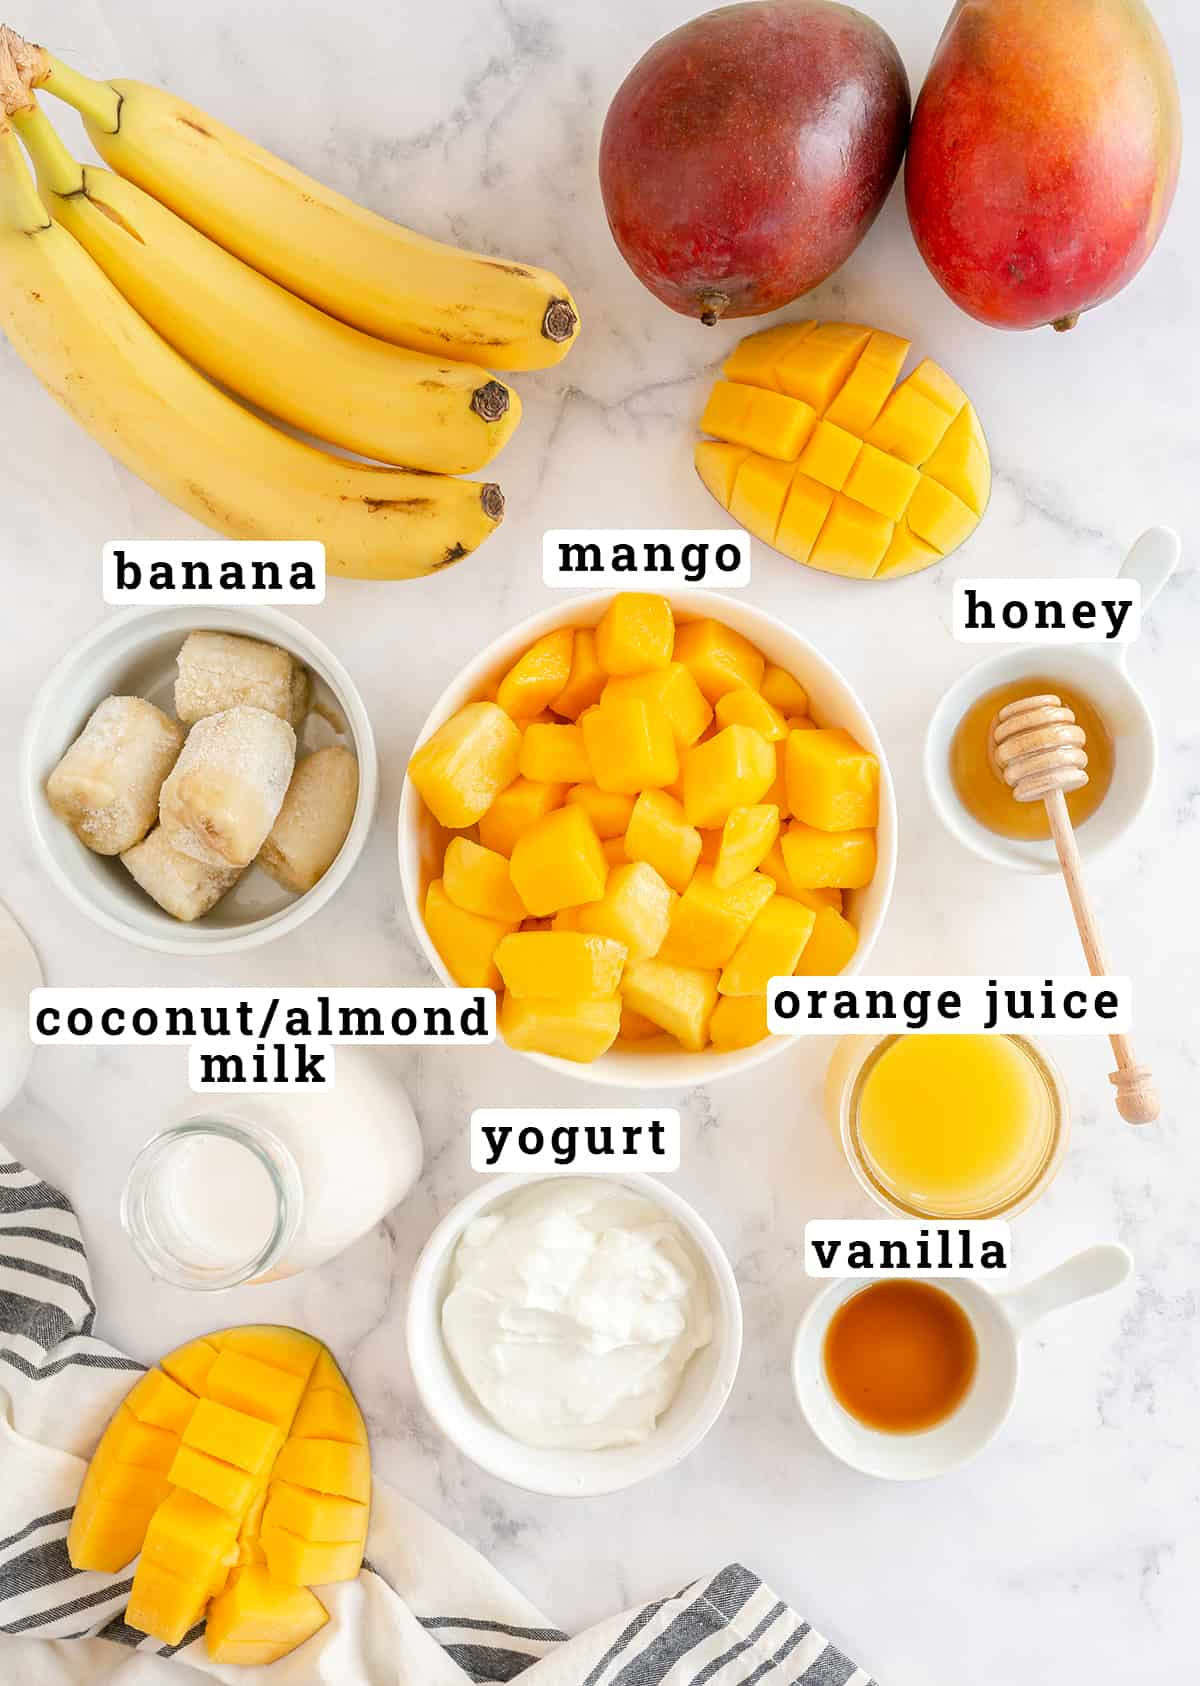 Mango Smoothie ingredients with text overlay.